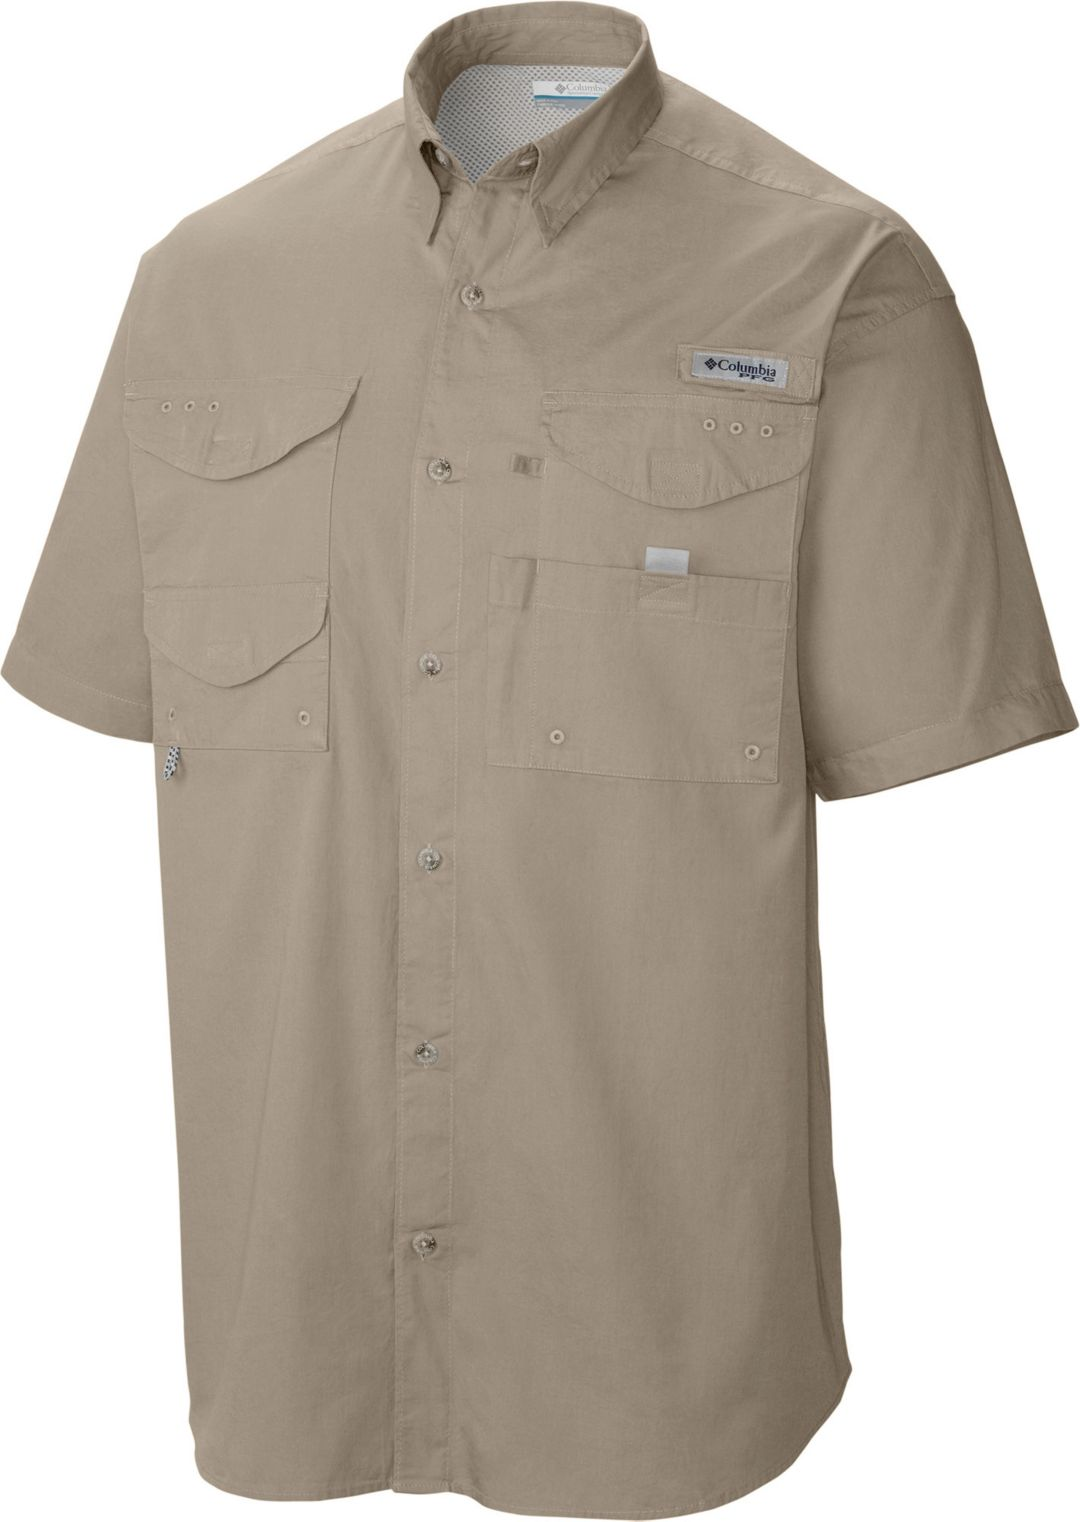 87fbb00f Columbia Men's PFG Bonehead Short Sleeve Shirt. noImageFound. Previous